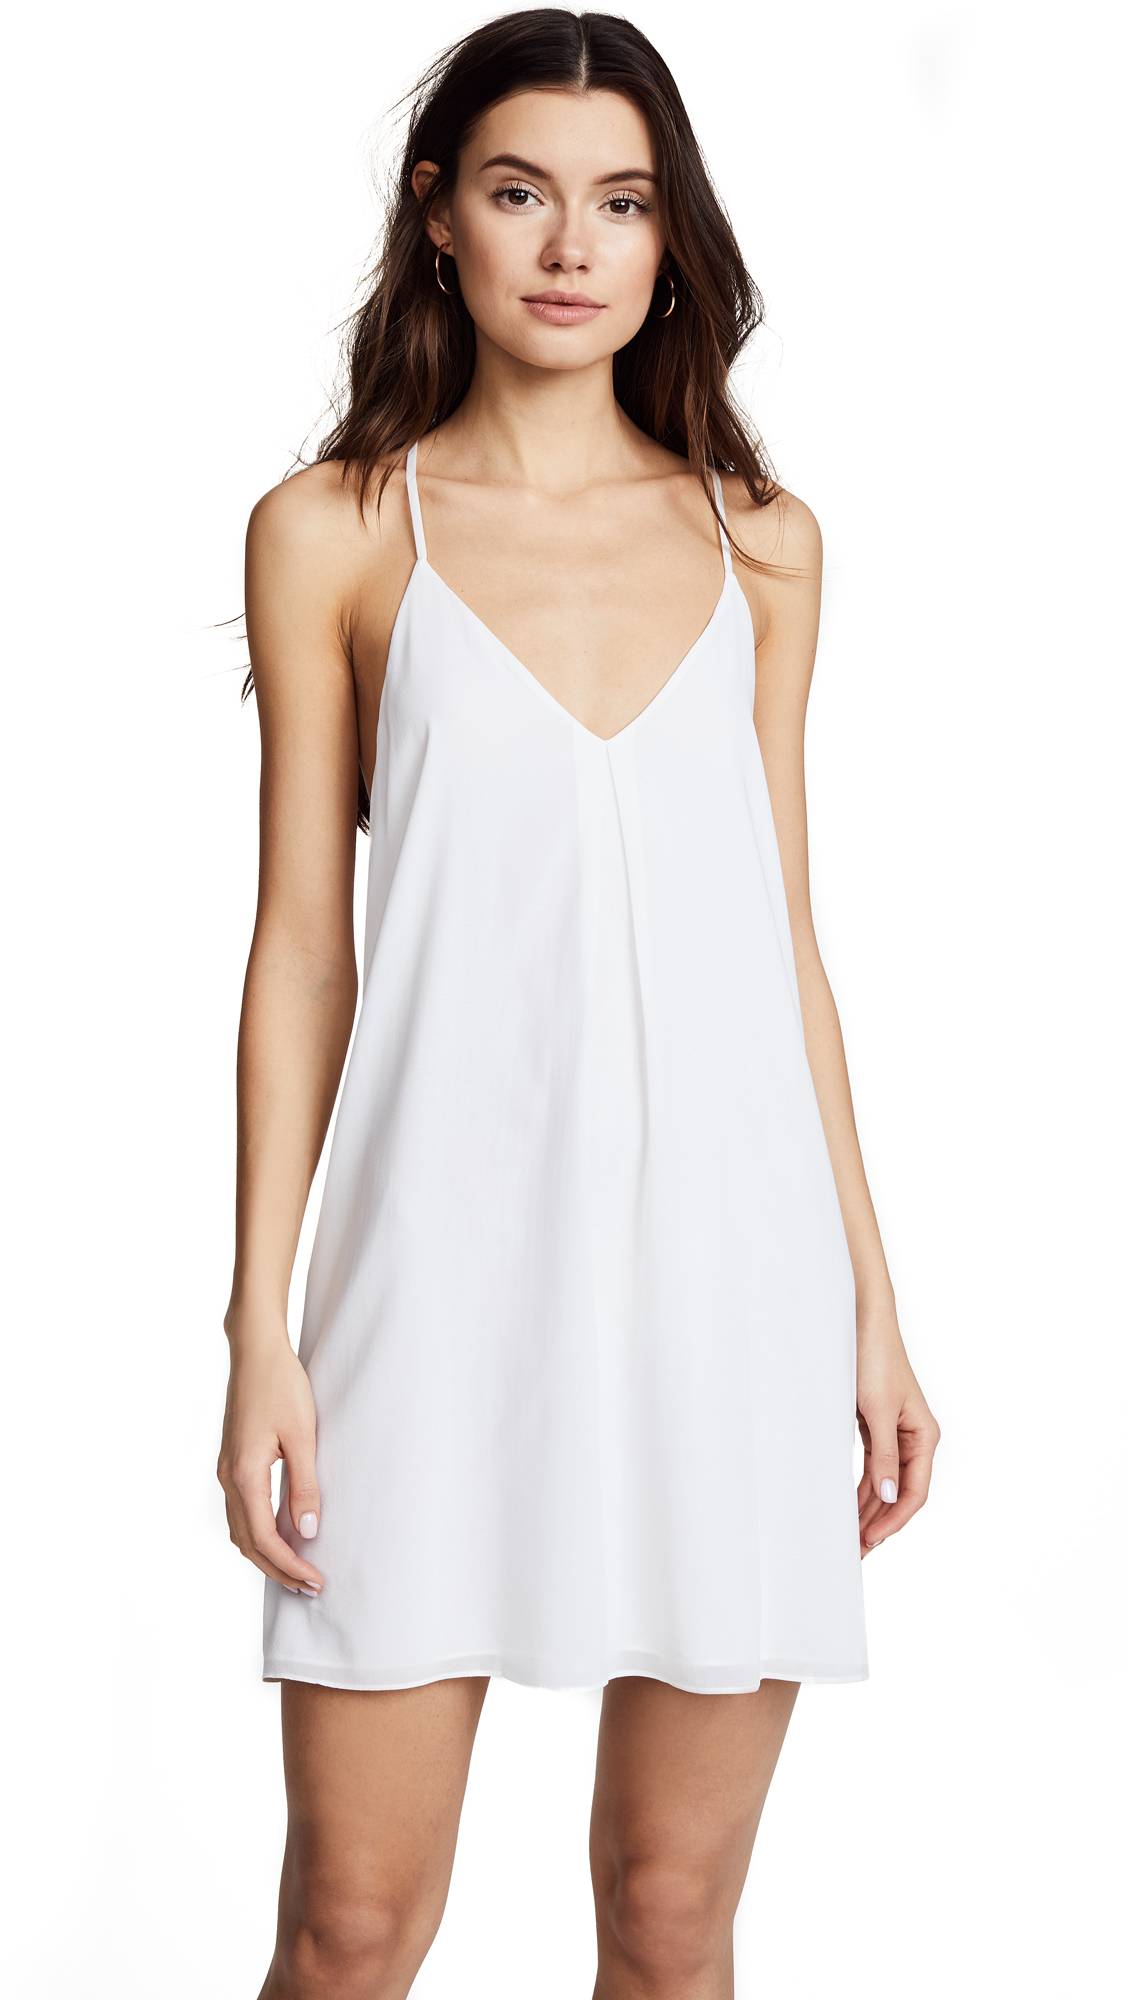 alice + olivia Fierra Y Back Tank Dress - White